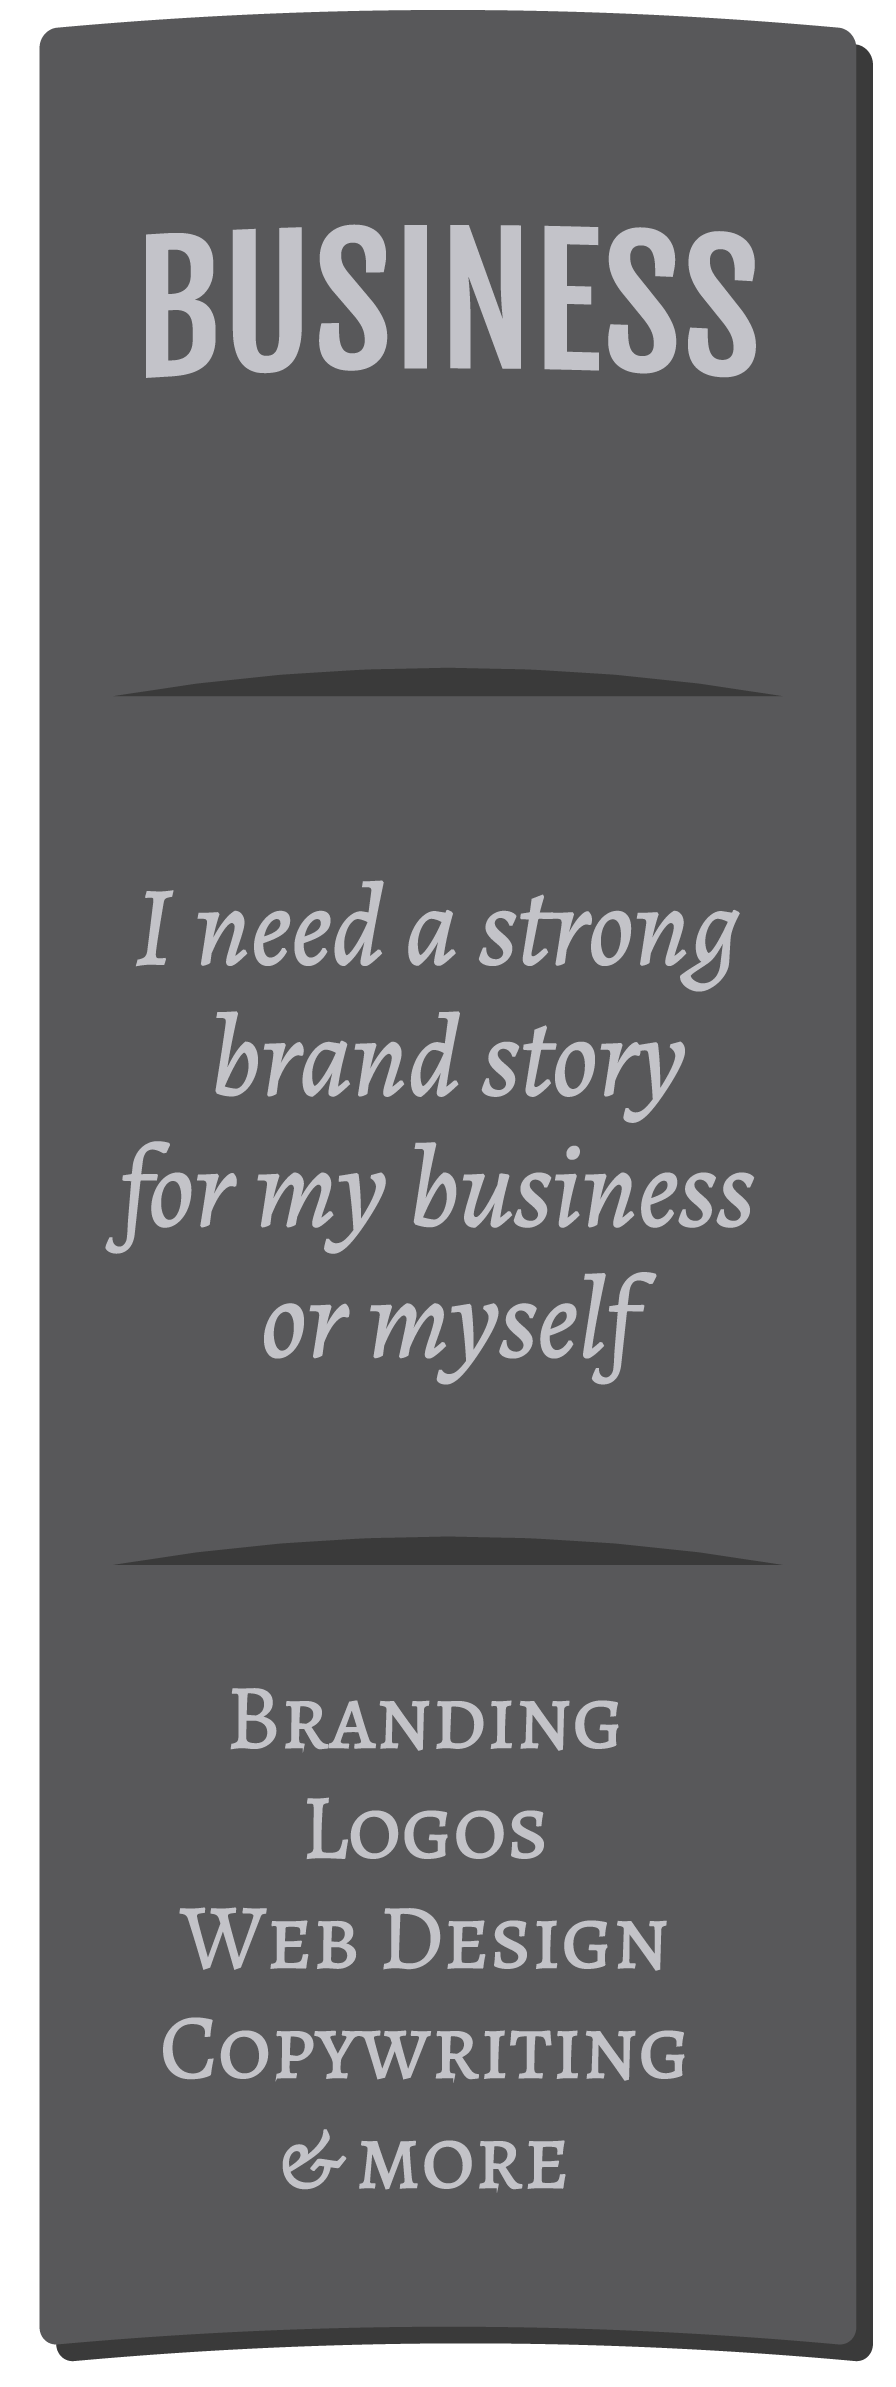 Business | I need a strong brand story for my business or myself | Branding, Logos, Naming, Websites, Consulting, and More